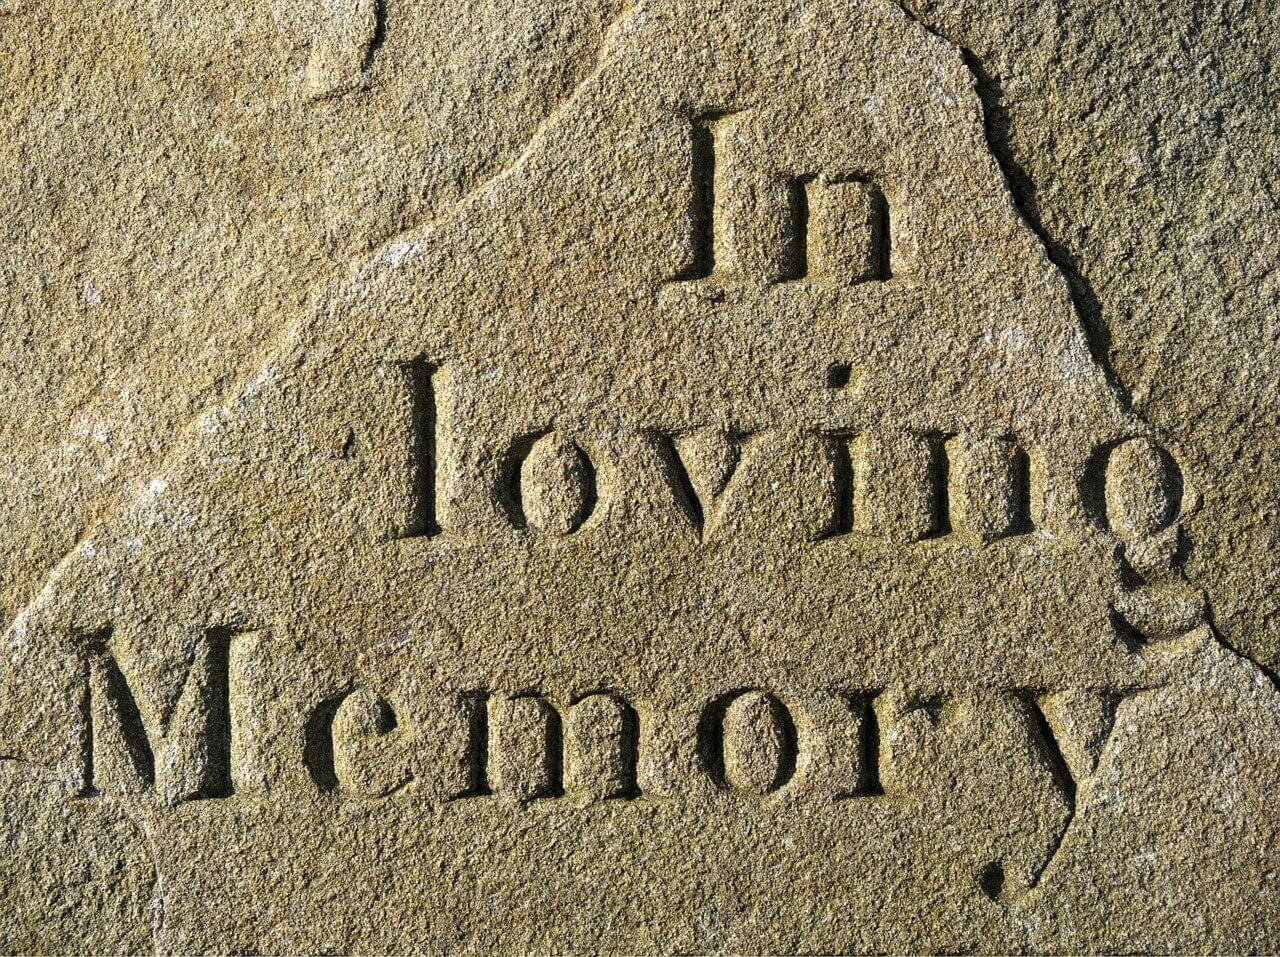 Grieving Takes Time